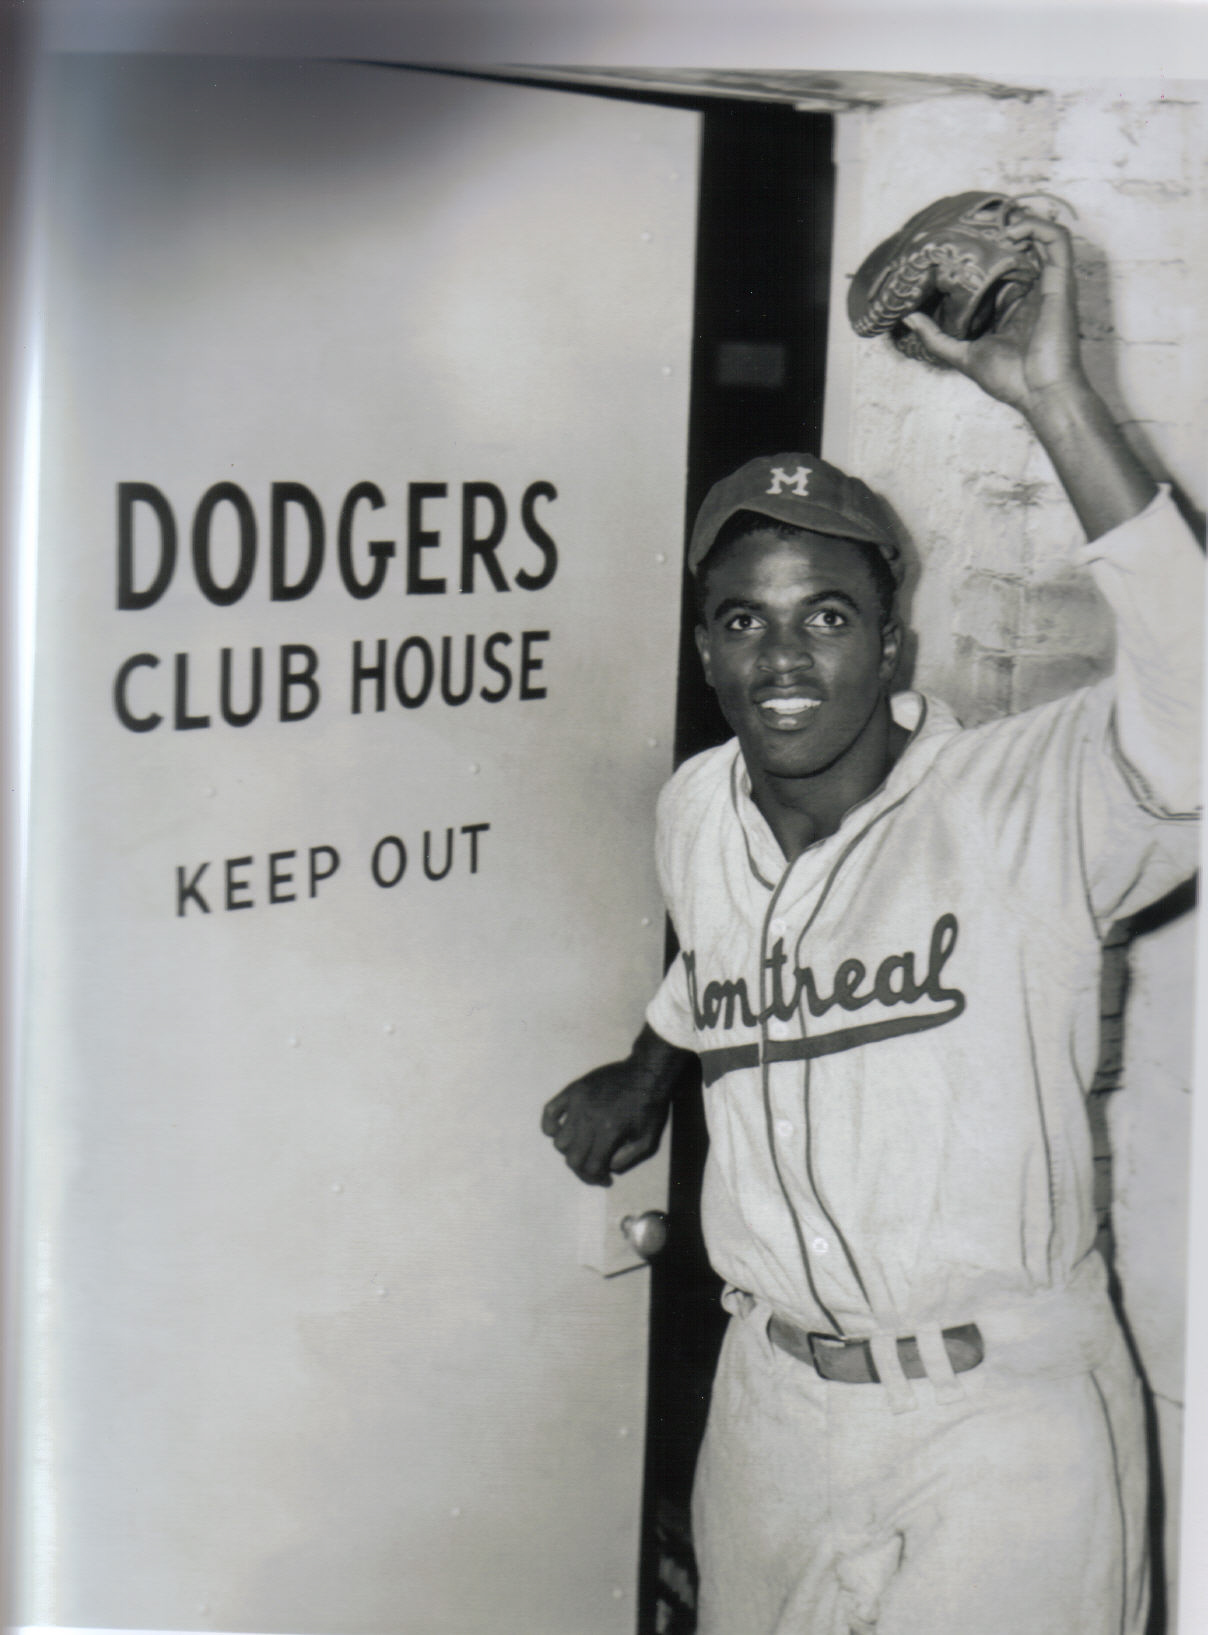 Jackie Robinson breaking the color barrier: April 15, 1947